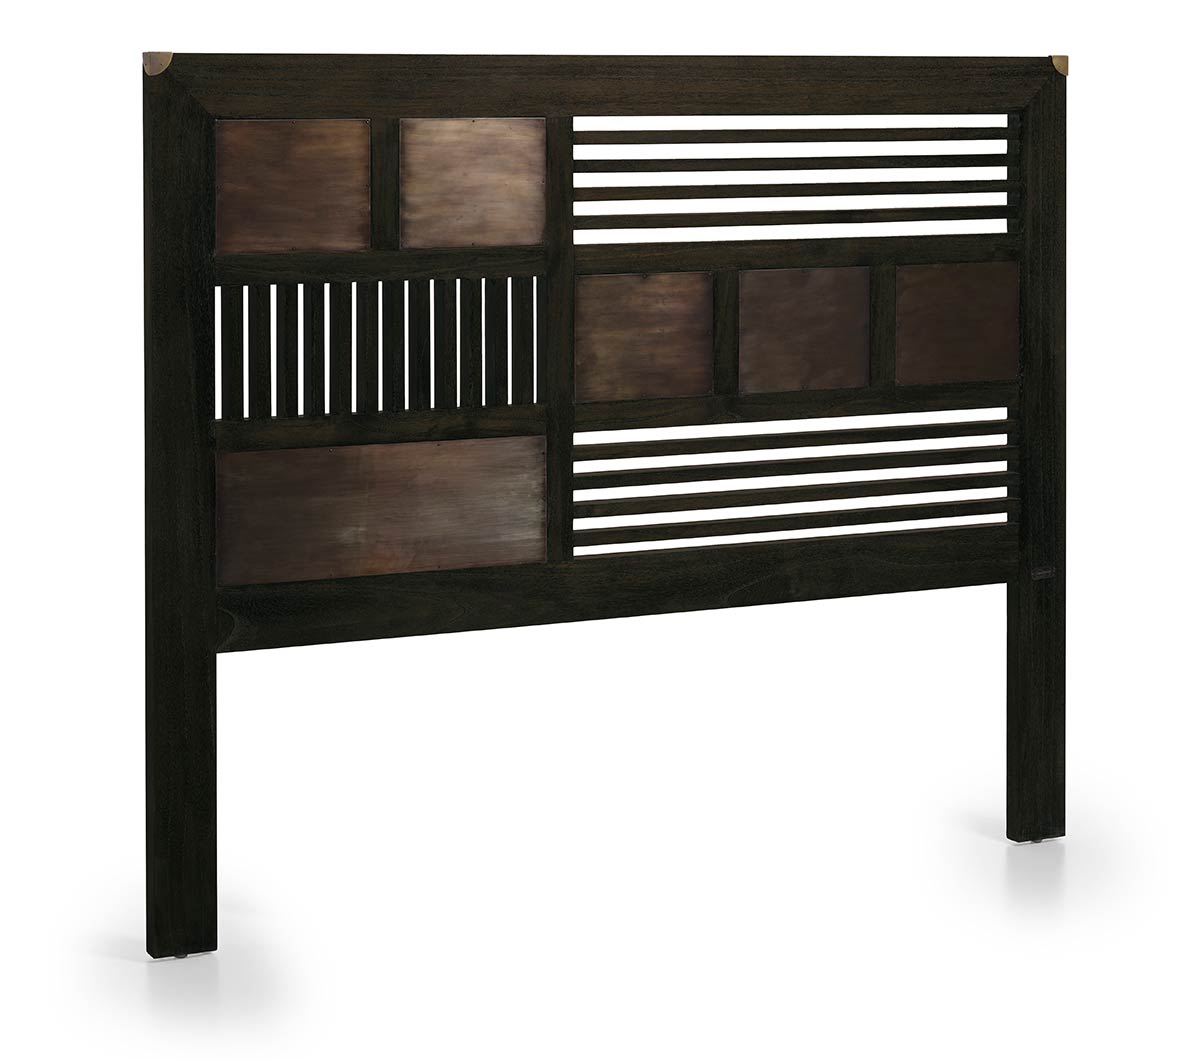 t te de lit design en bois collection jader. Black Bedroom Furniture Sets. Home Design Ideas